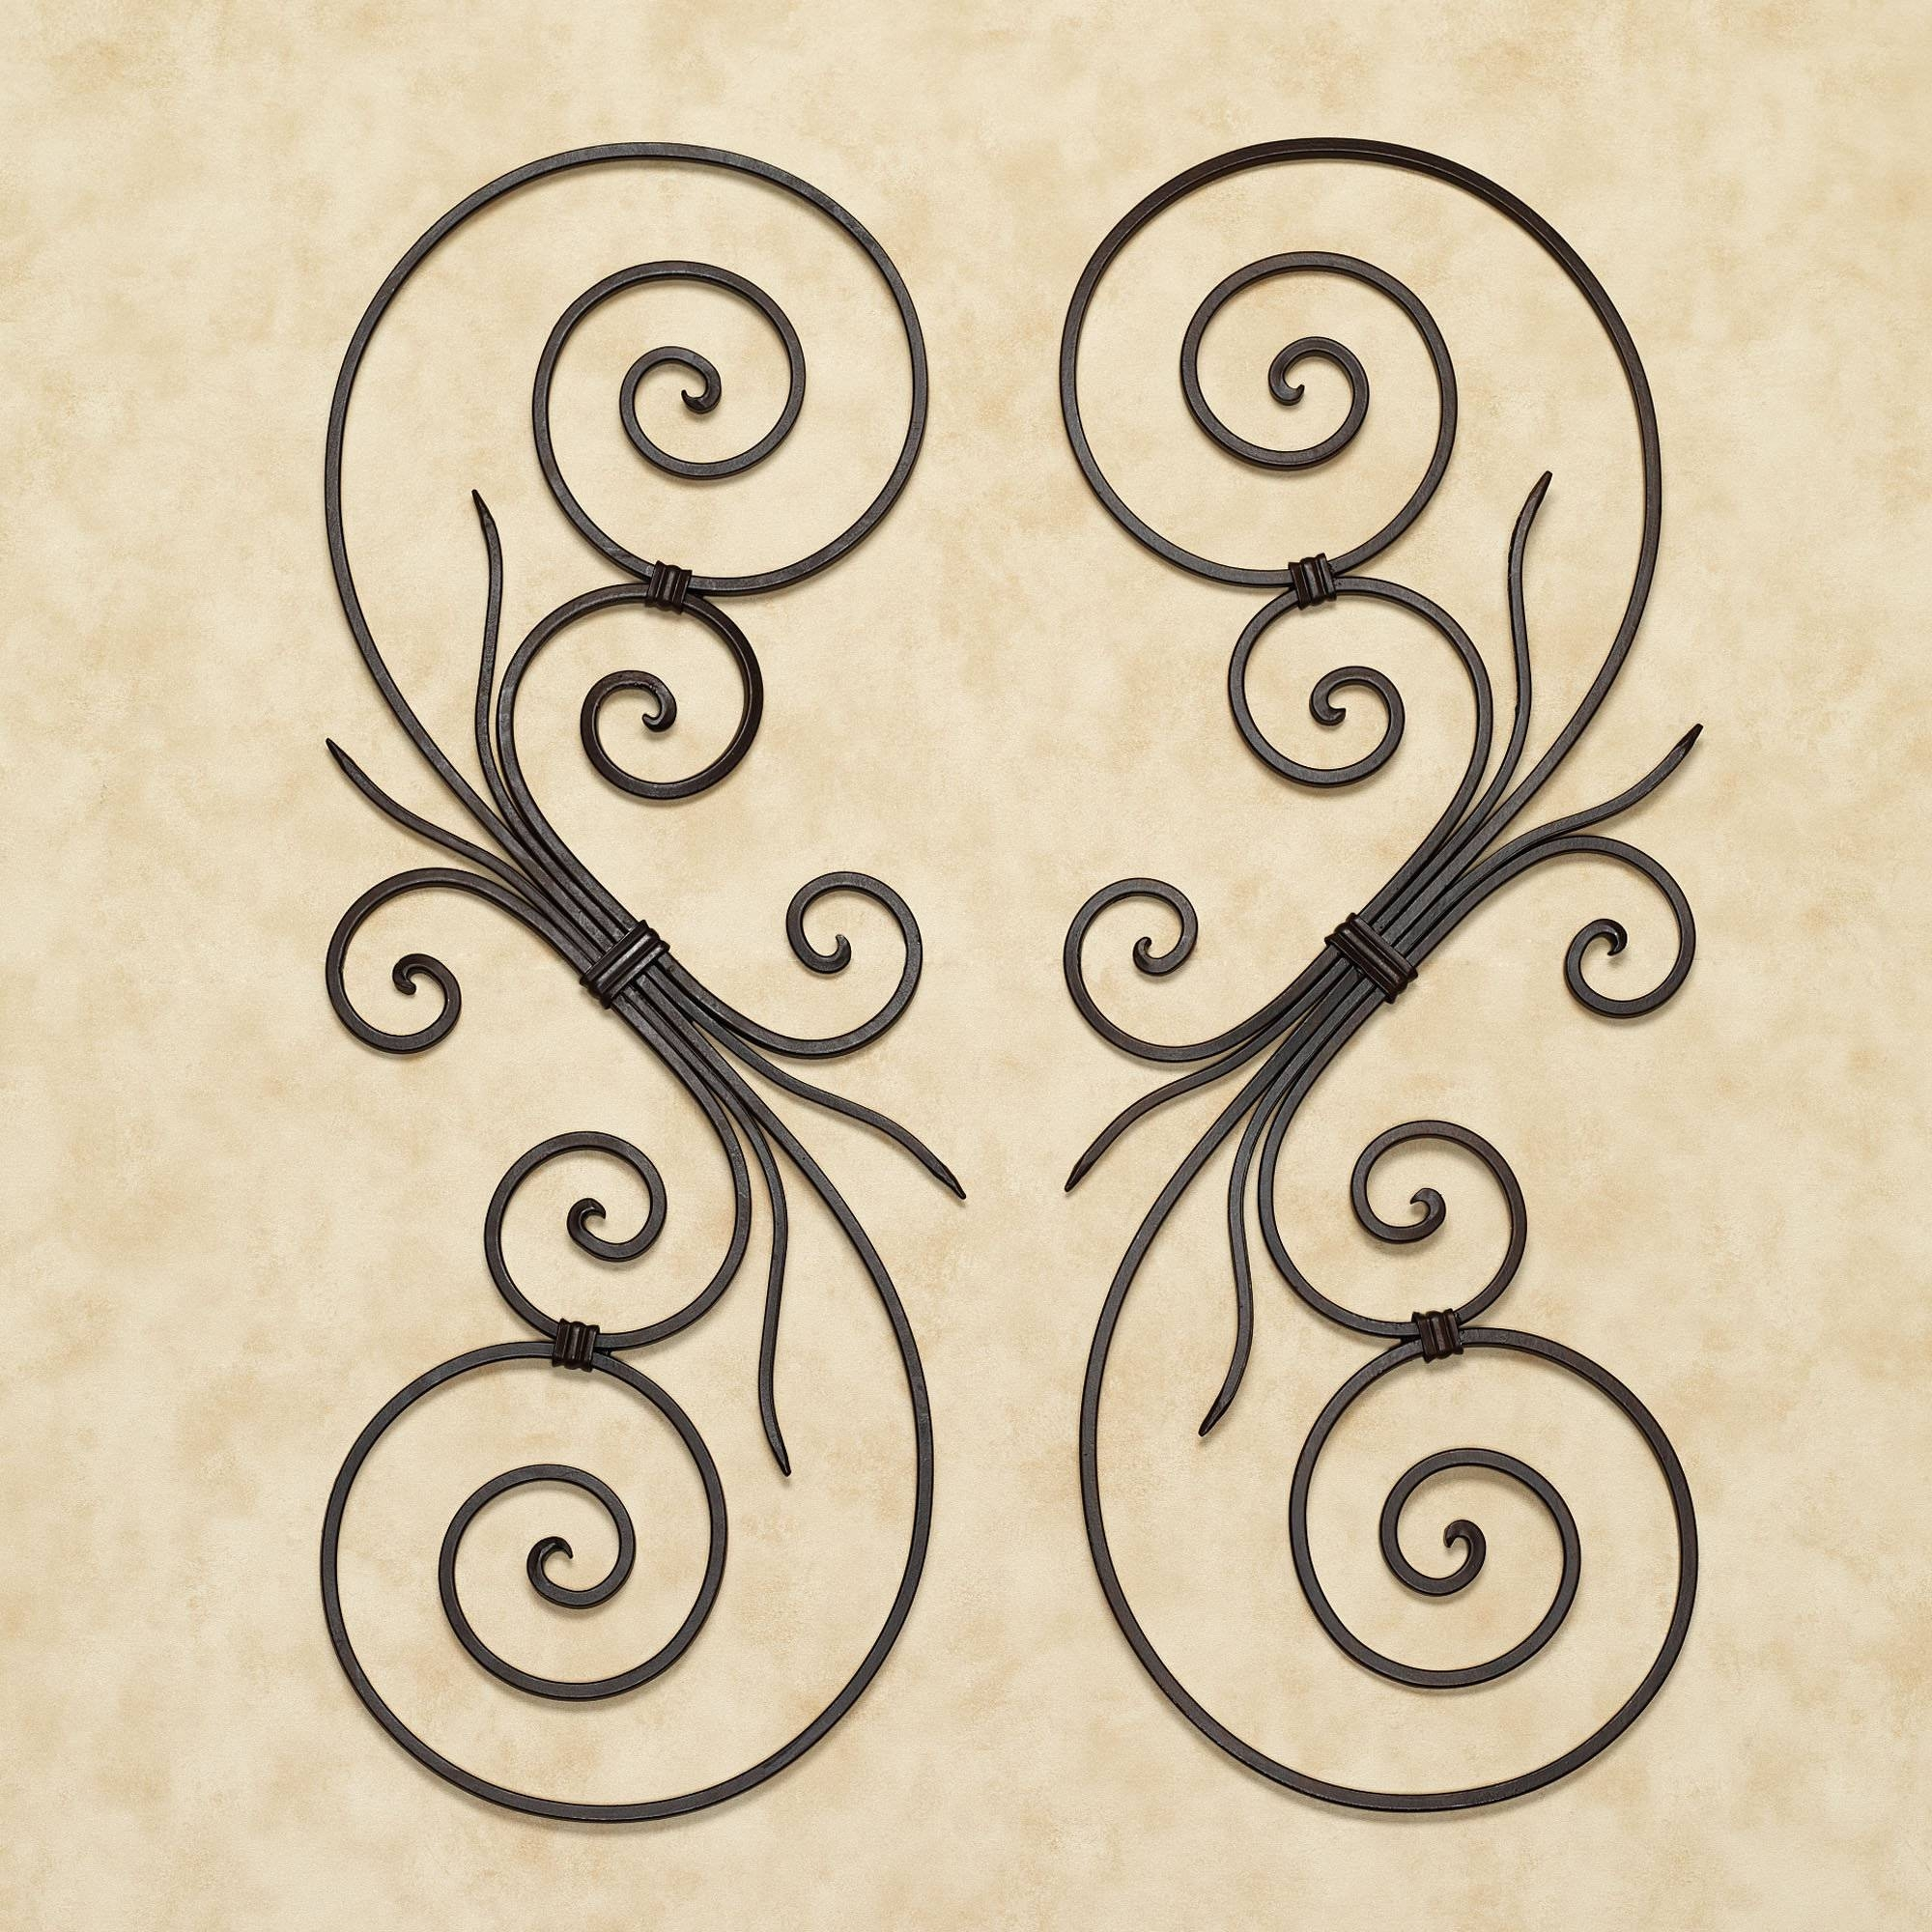 Wall Art Design Ideas: Yellow La Wrought Iron Scroll Wall Art Regarding Most Recent Scrolled Metal Wall Art (View 17 of 20)